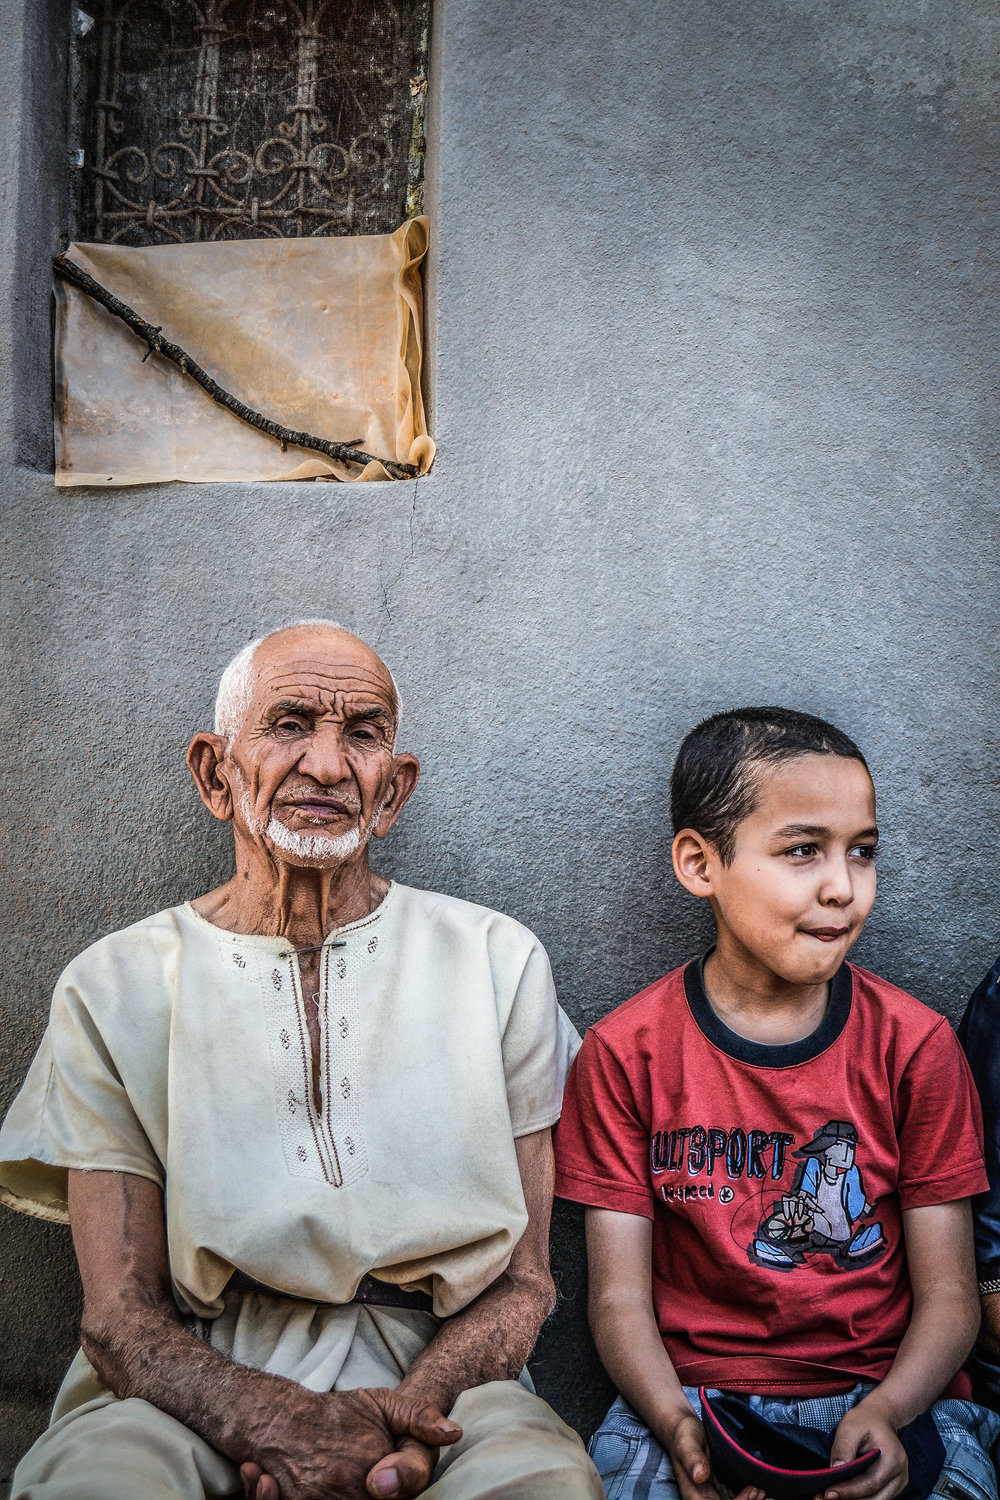 older man and young child sitting next to each other